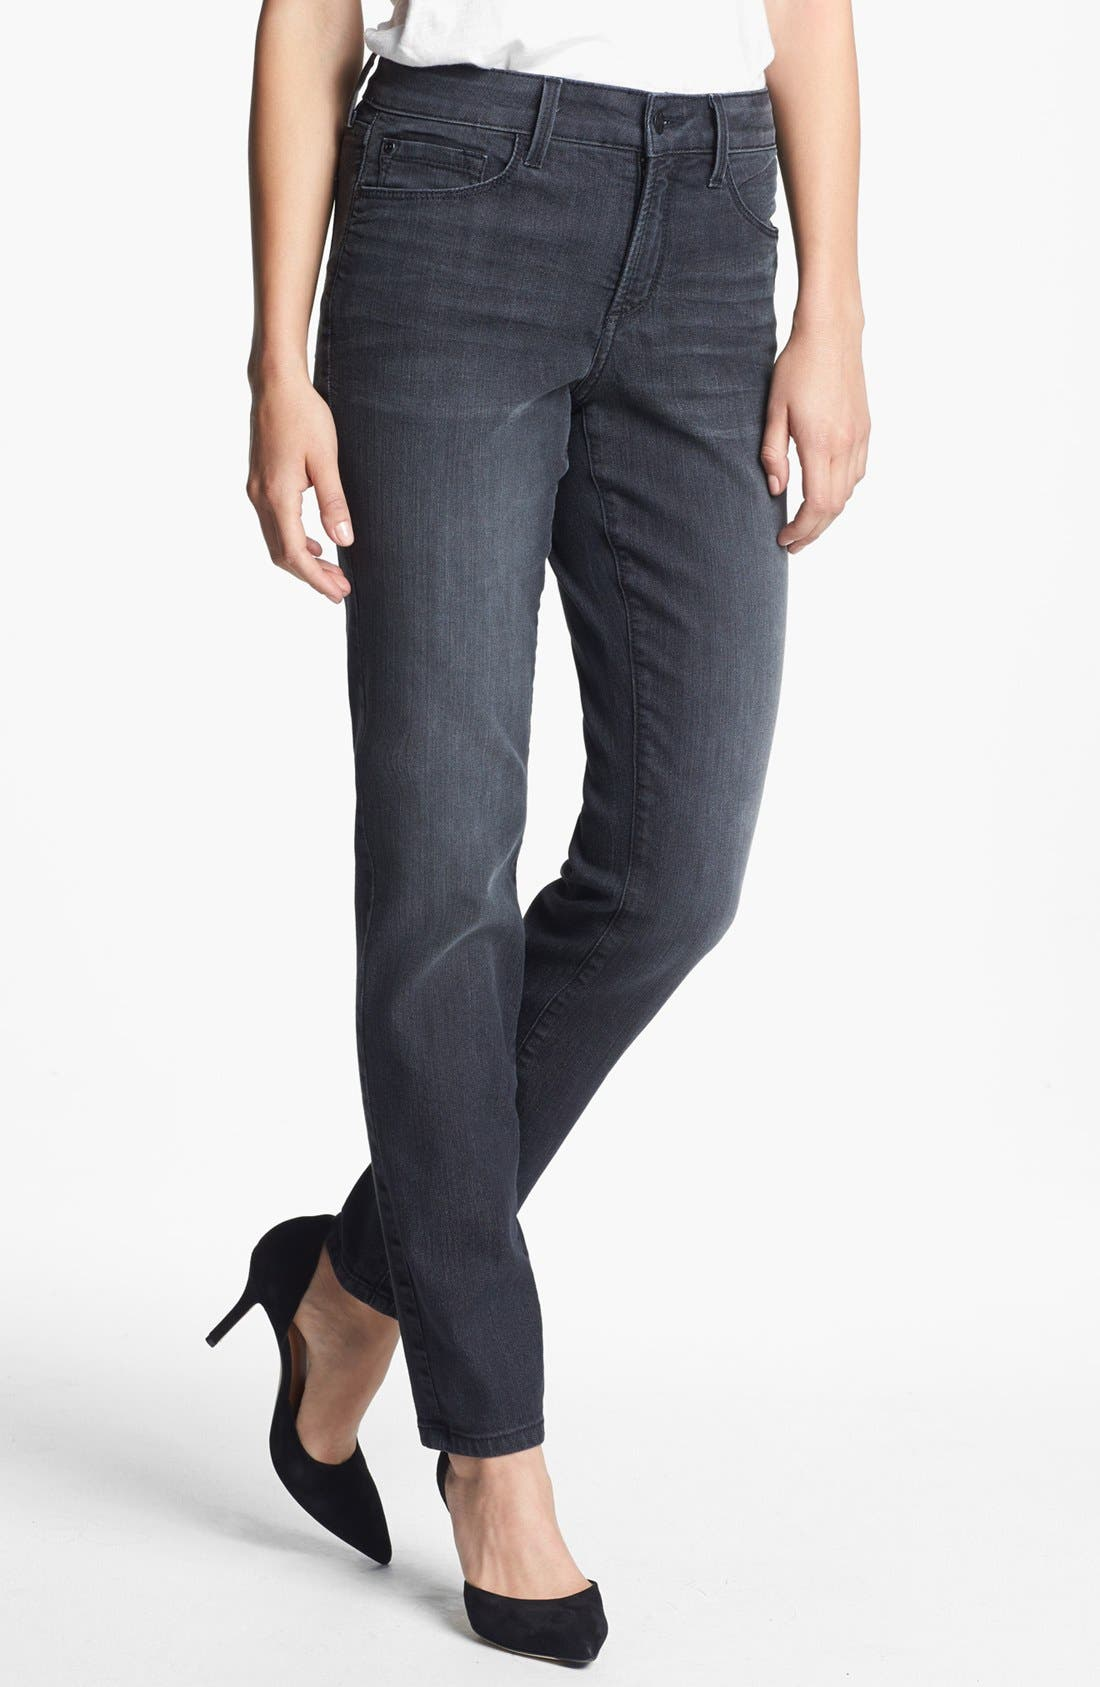 Alternate Image 1 Selected - NYDJ 'Alina' Stretch Skinny Jeans (Stoney River) (Regular & Petite)